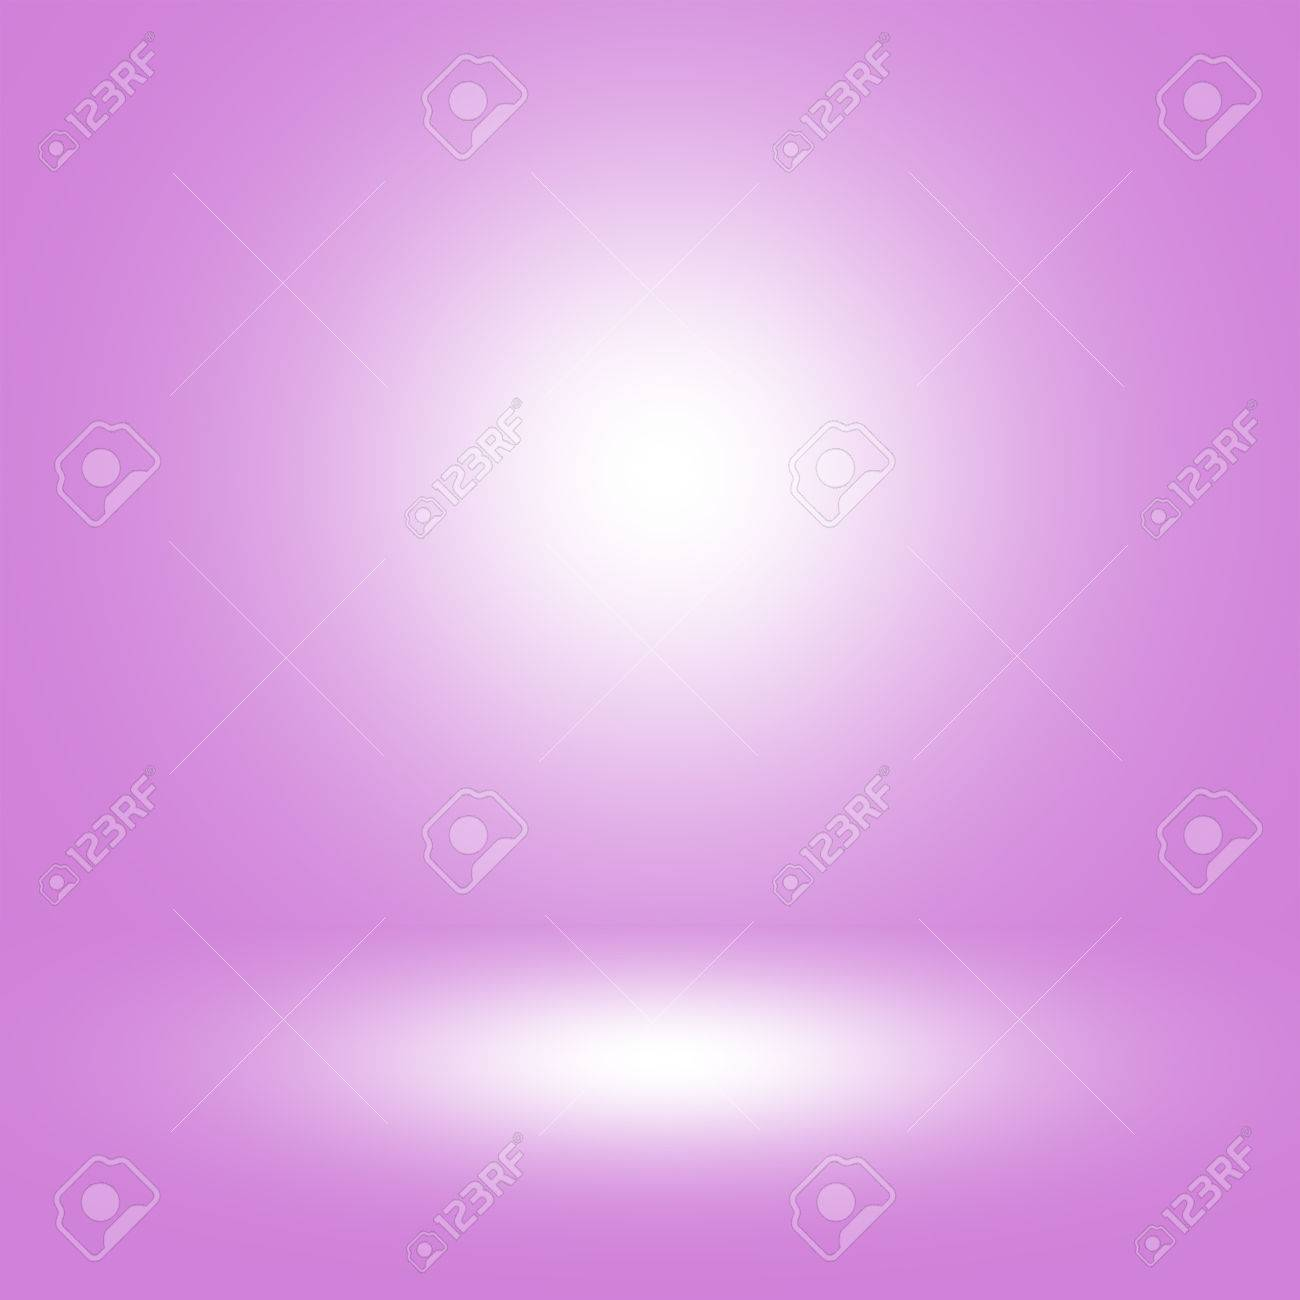 <b>Pink Gradient Abstract Background</b> Empty Room stock photo 609948012 ...